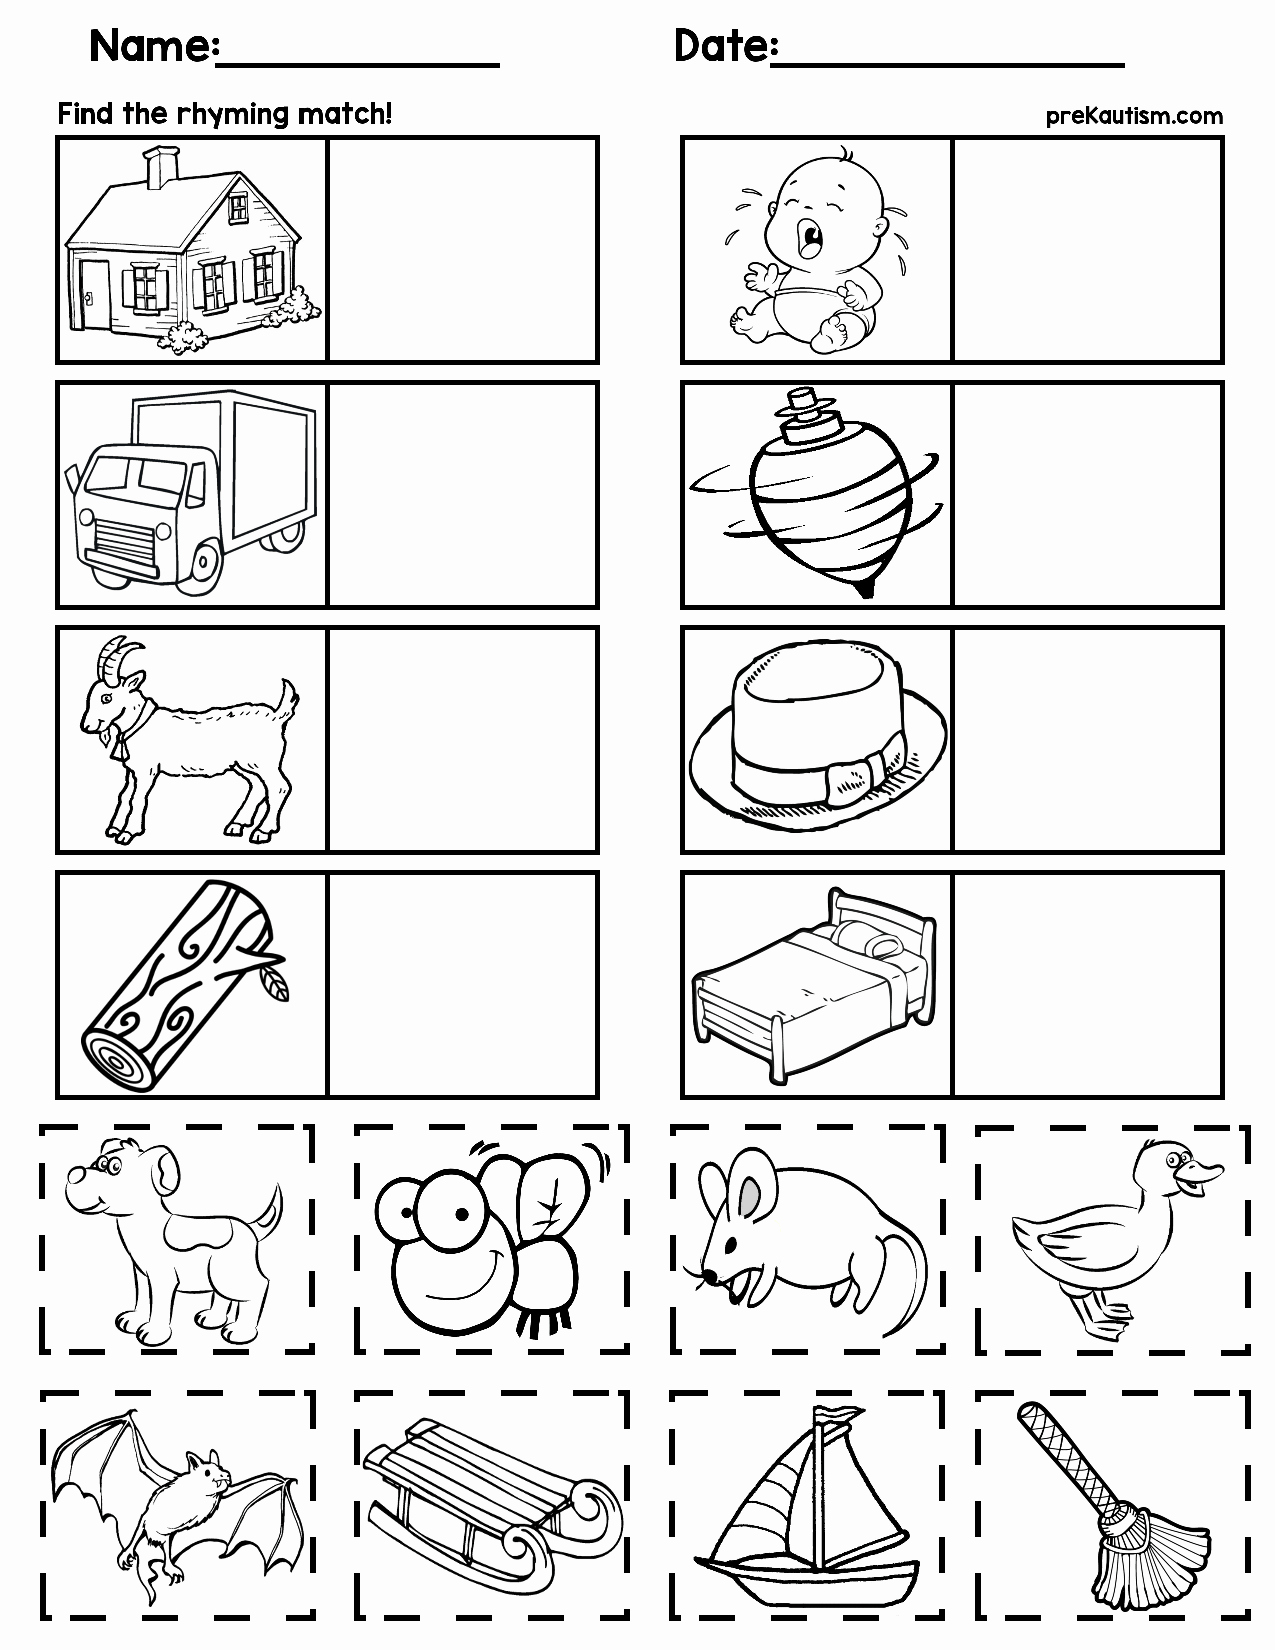 Rhyming Worksheets for Preschoolers Awesome Matching Rhyming Words